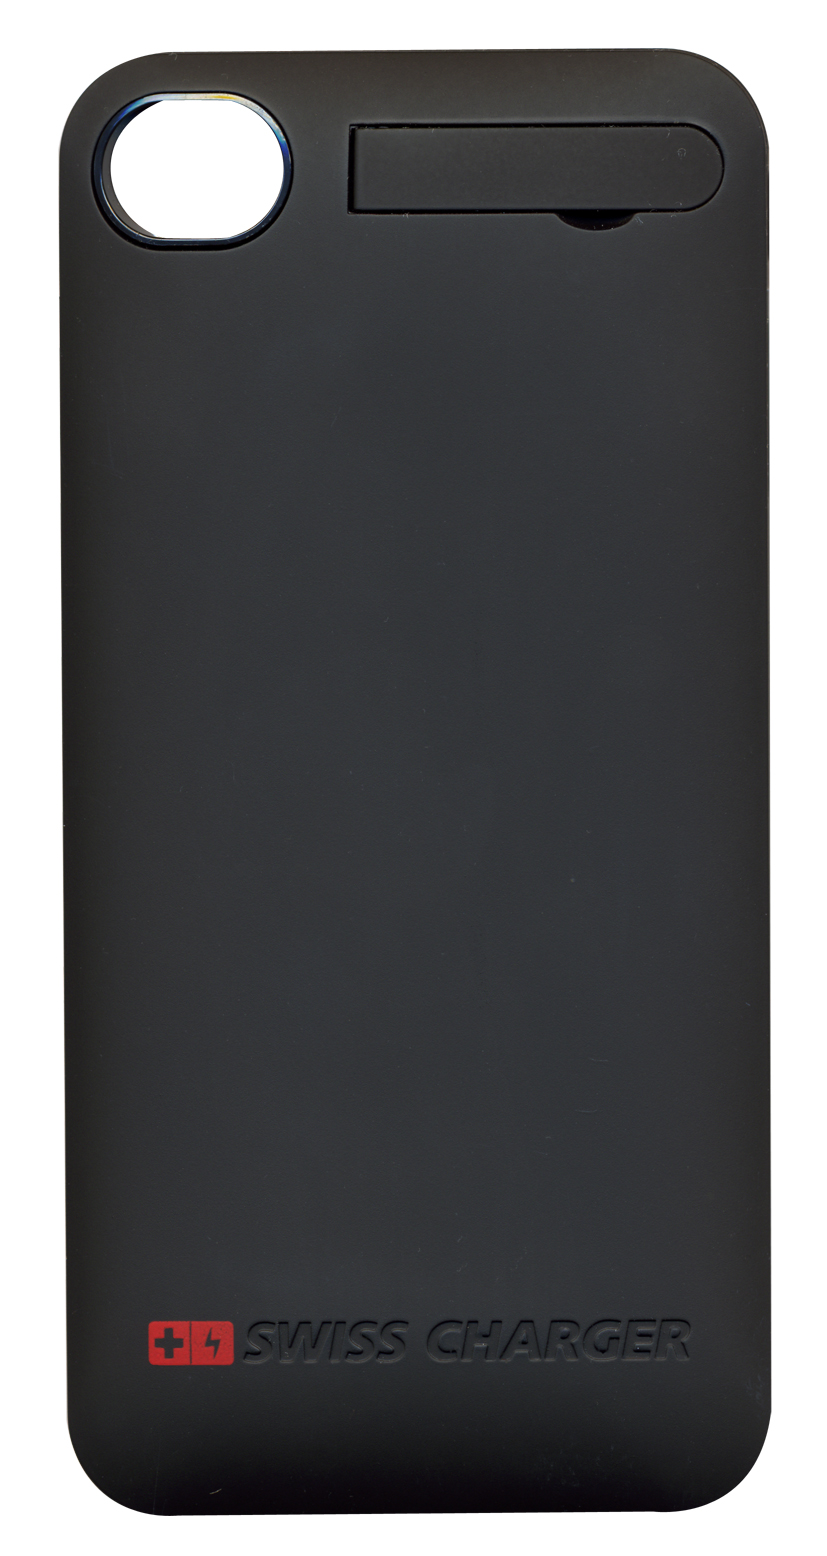 Coque Batterie iPower Swiss Charger